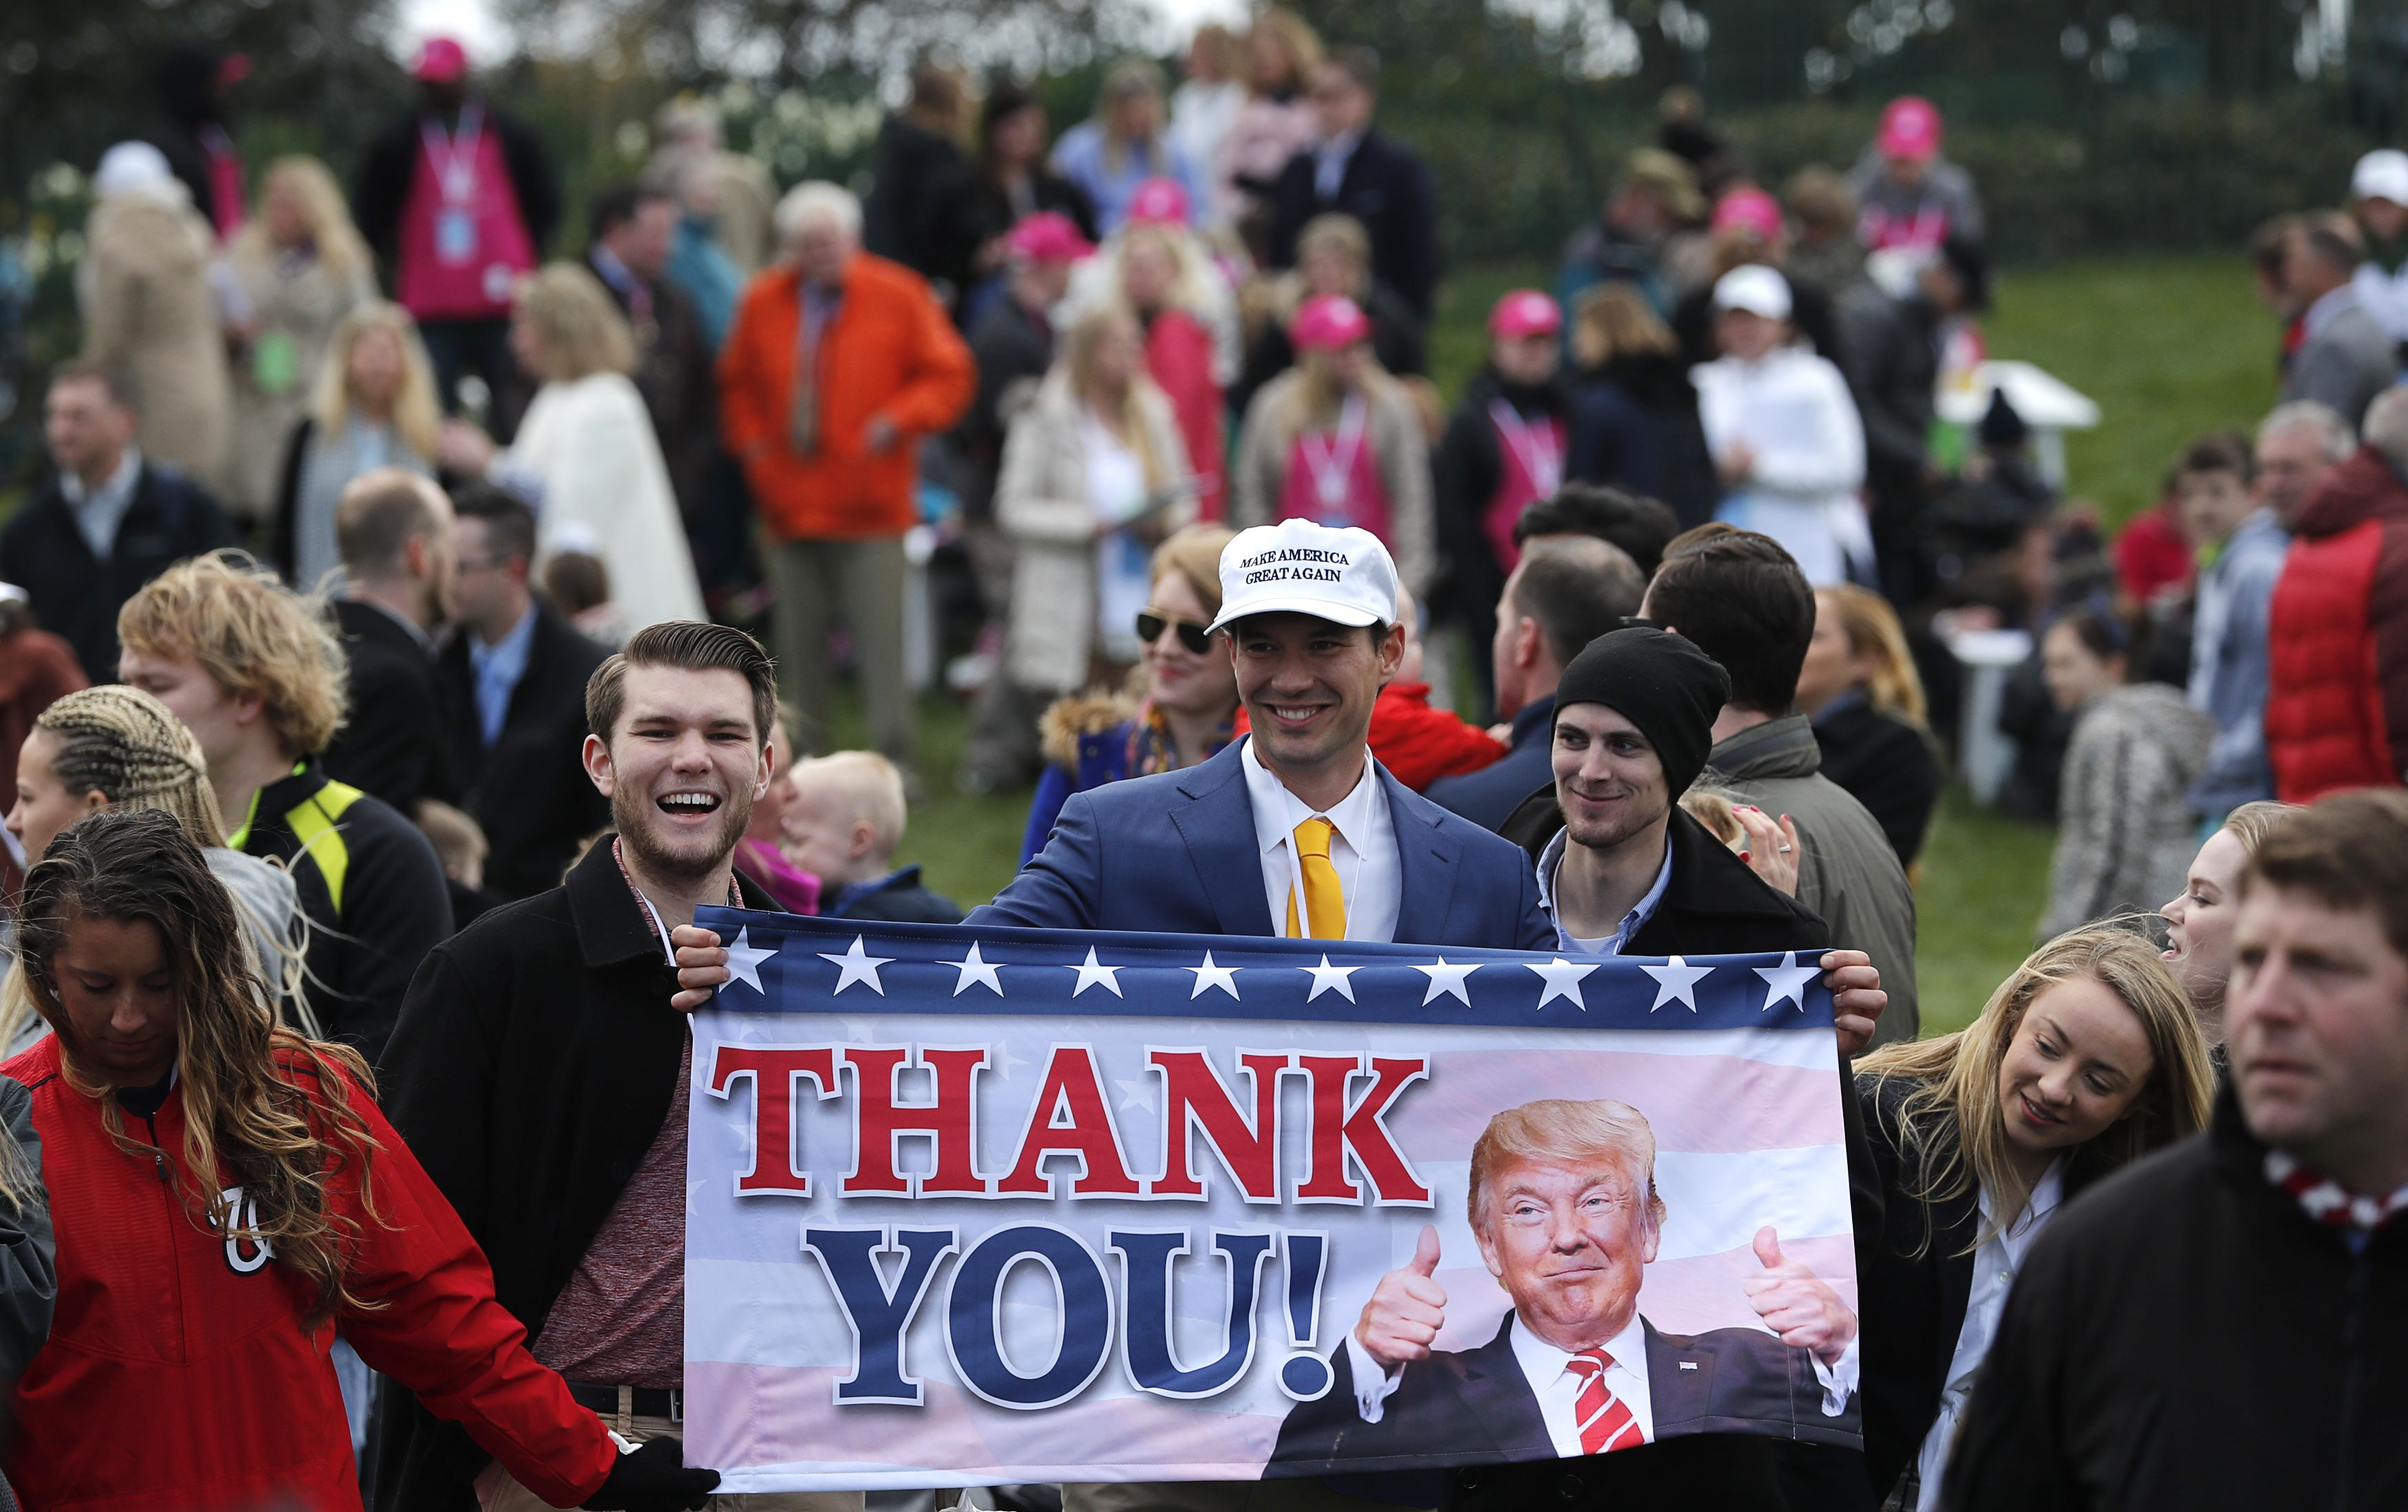 """Supporters of U.S. President Donald Trump hold a """"Thank You!"""" banner at the annual White House Easter Egg Roll on the South Lawn of the White House in Washington"""